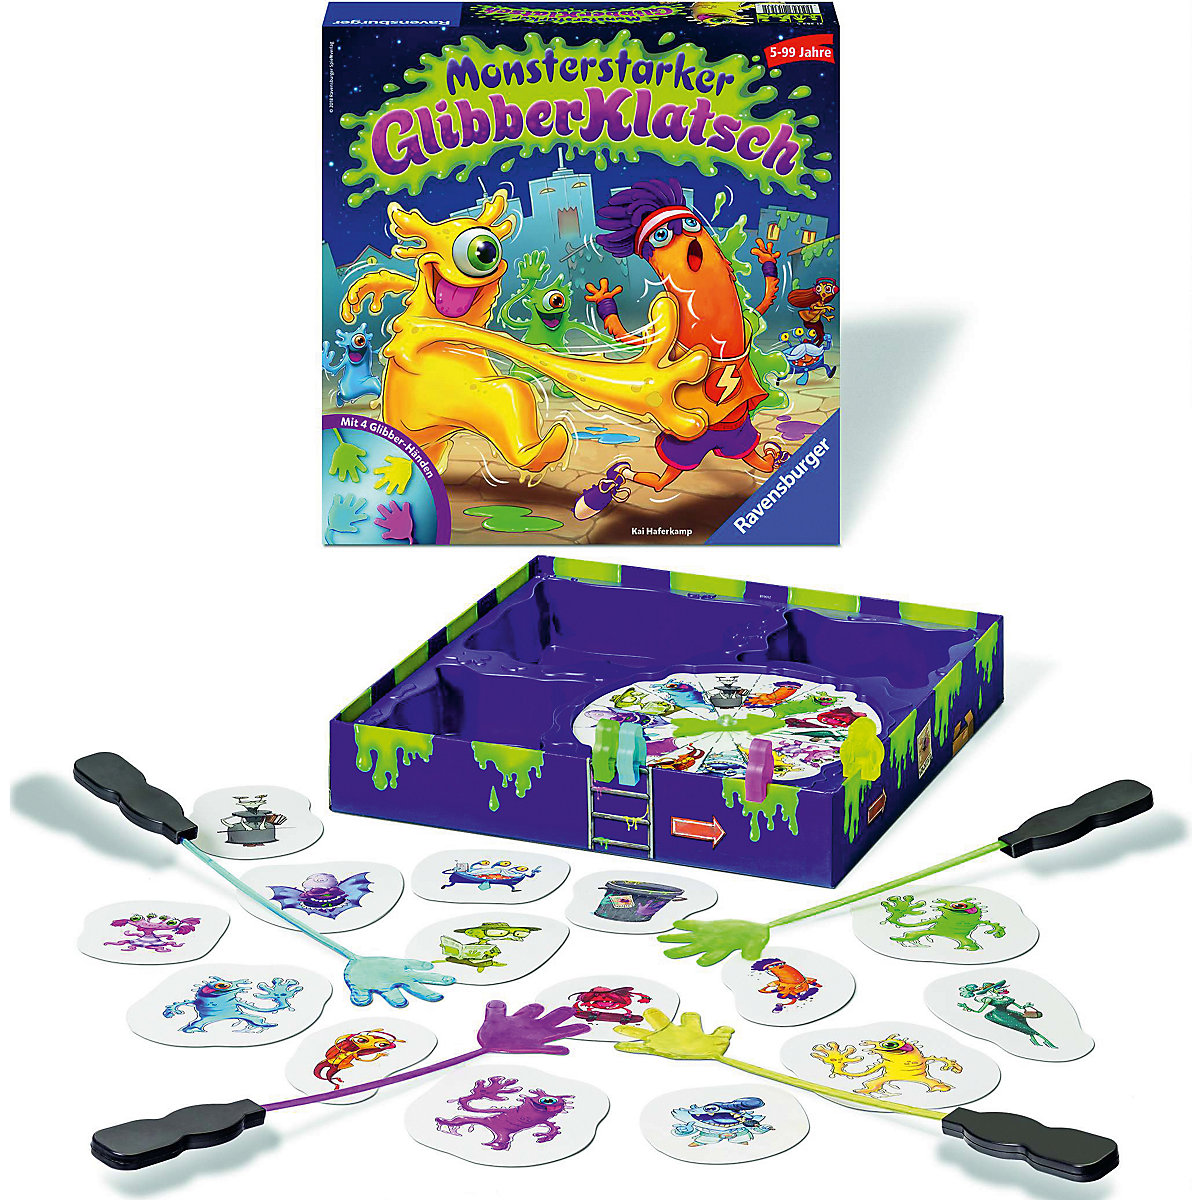 Monsterstarker GlibberKlatsch Ravensburger jzHOb